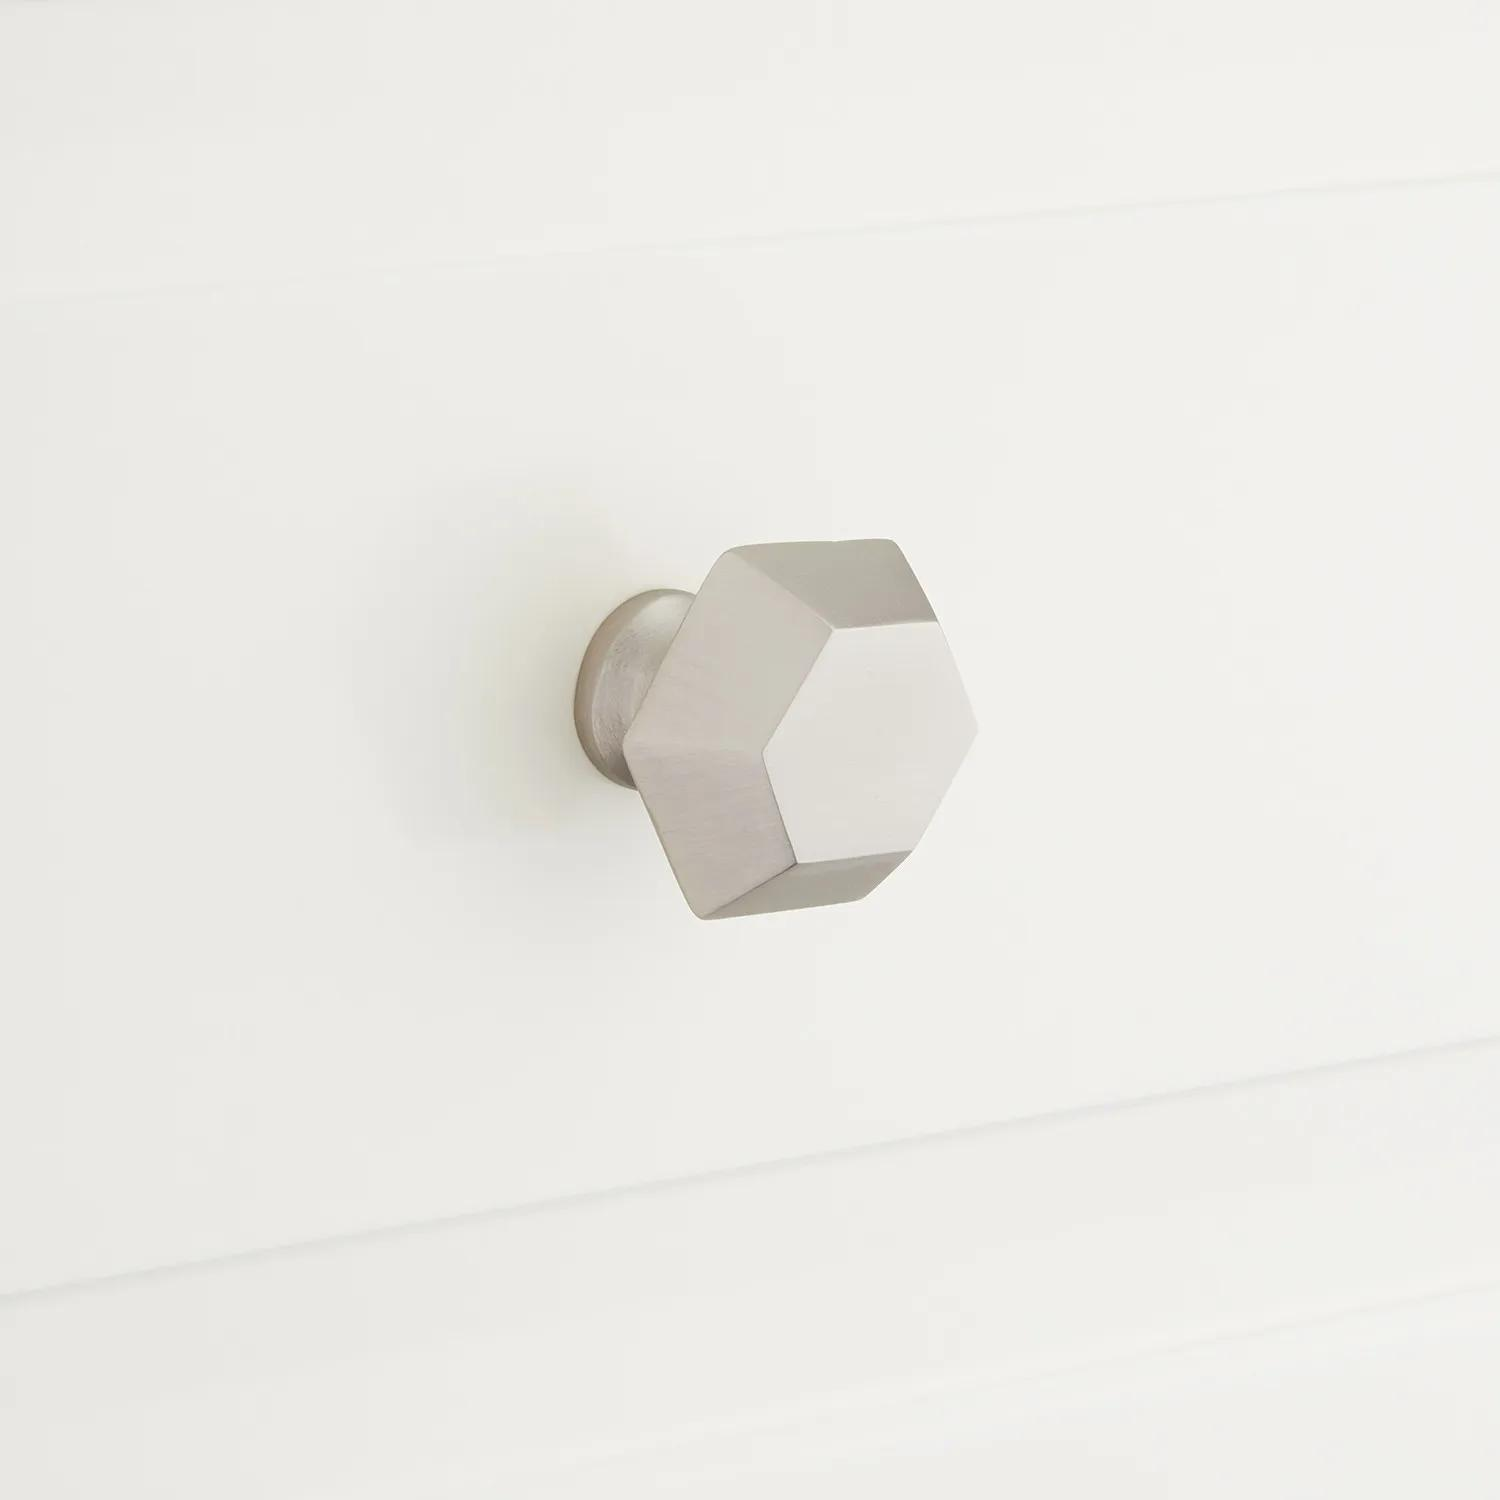 Hexagon Cabinet Knob Hardware Brushed Nickel Solid Stainless Steel